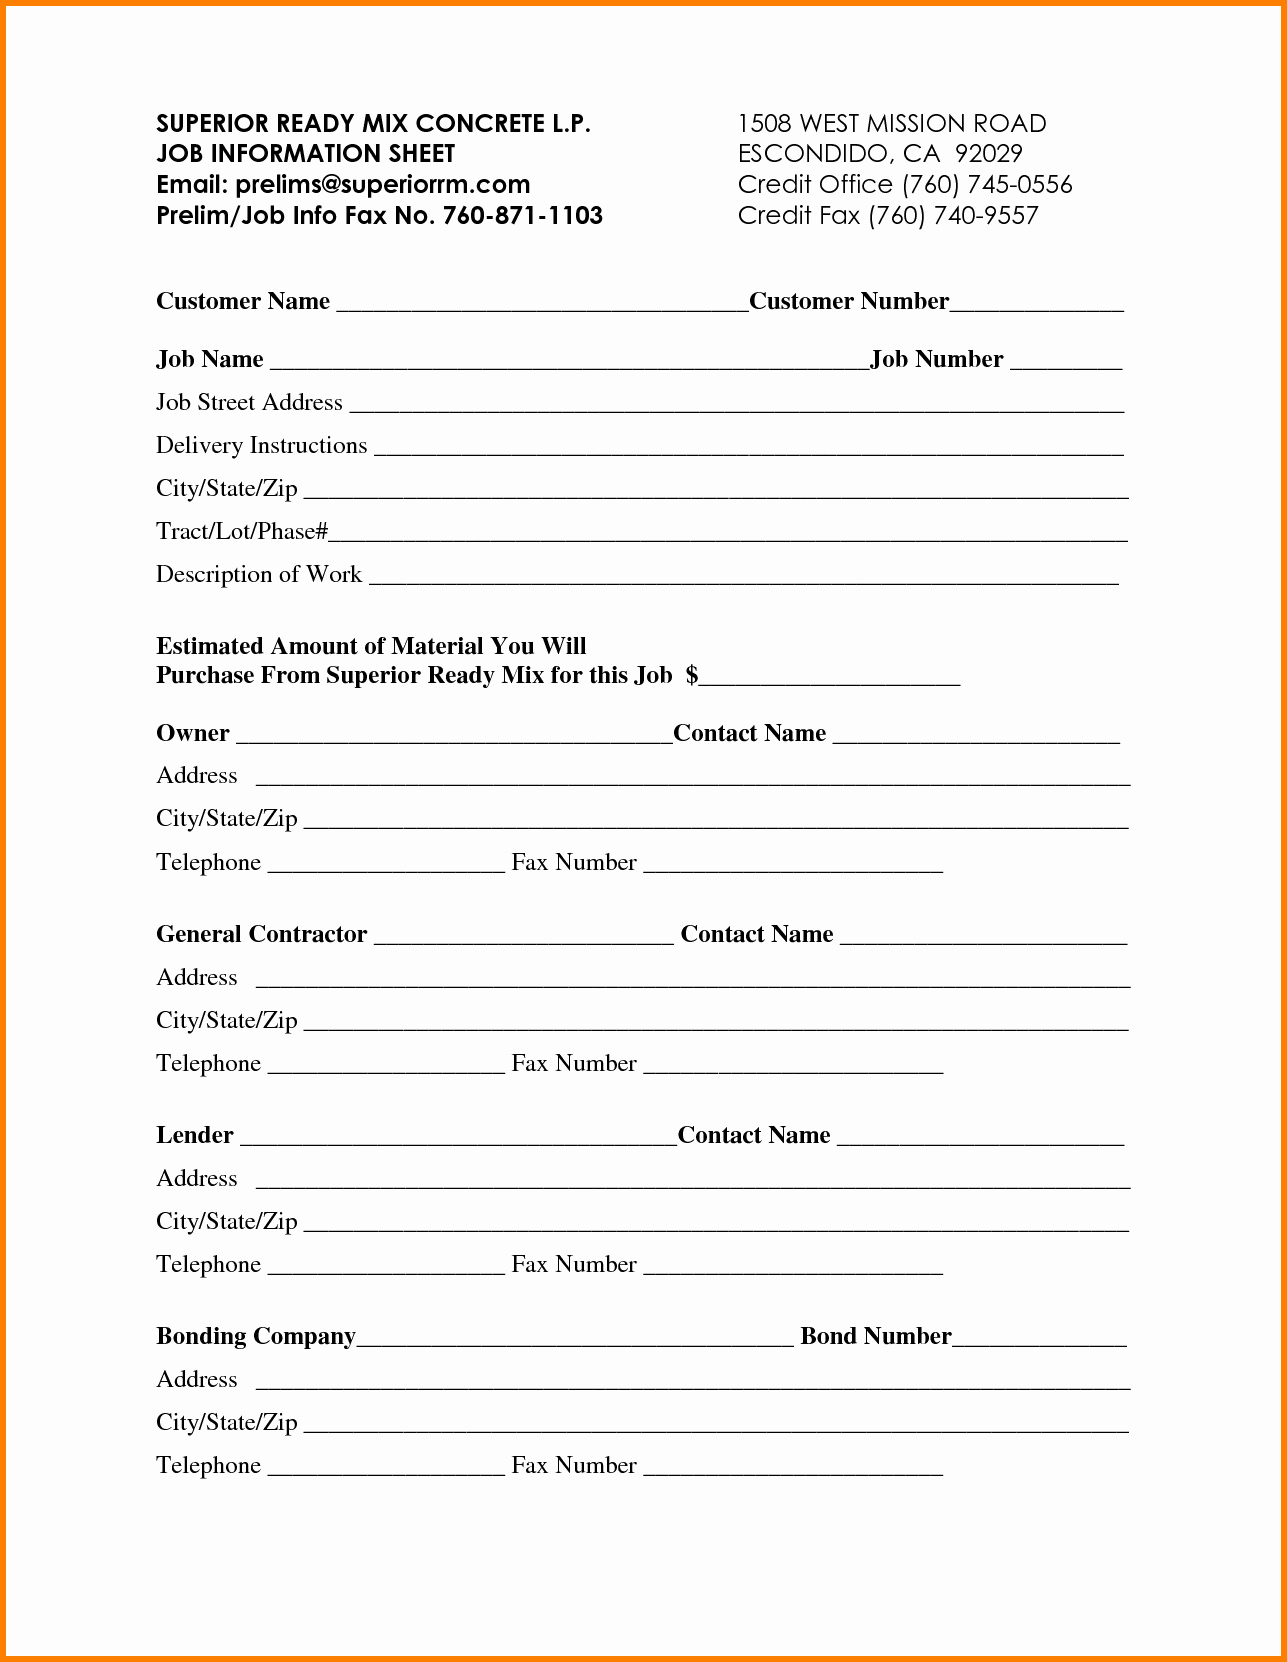 Information form Template Beautiful Information Sheet Sample Novasatfm